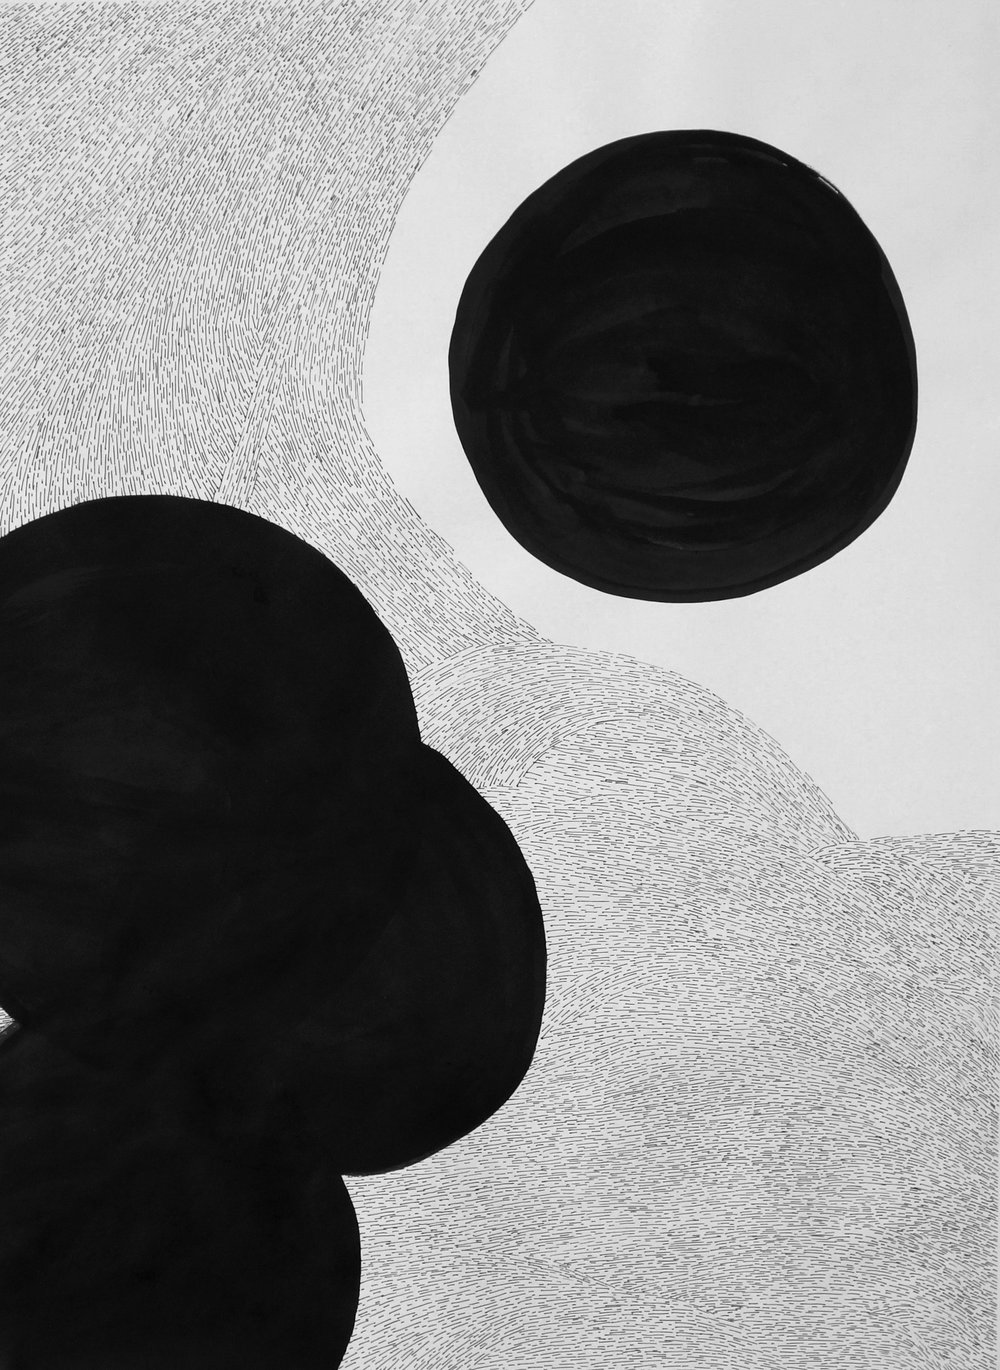 """Implantation  Systems Series - Molecular, 2016  24"""" x 18"""" Ink on paper  ©kellycorrell"""